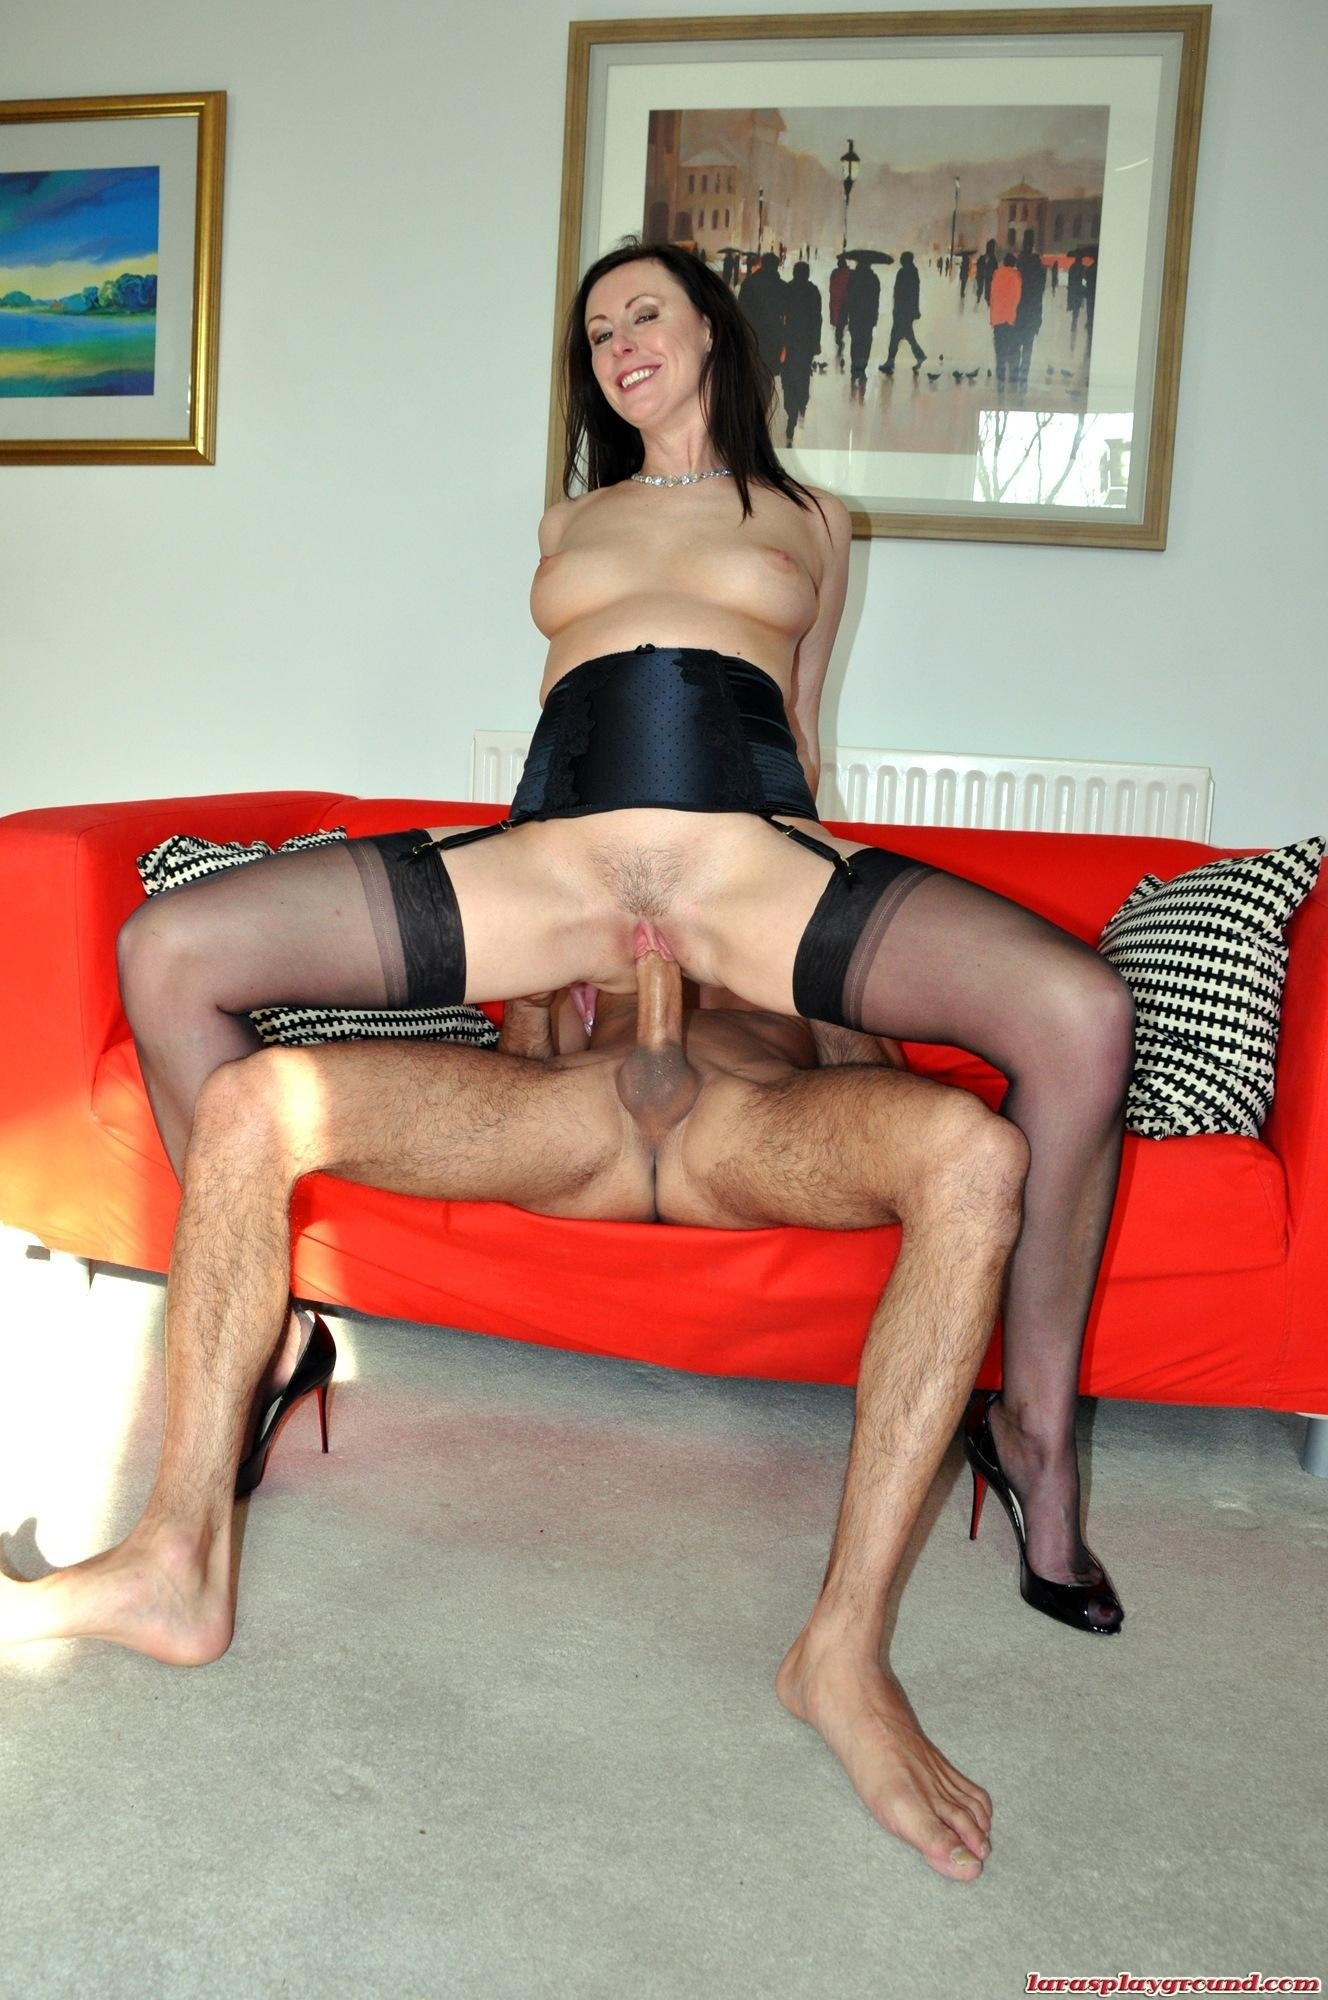 Joanne stanhope lesbian Adella from DATES25.COM - Small titted amateur french milf g